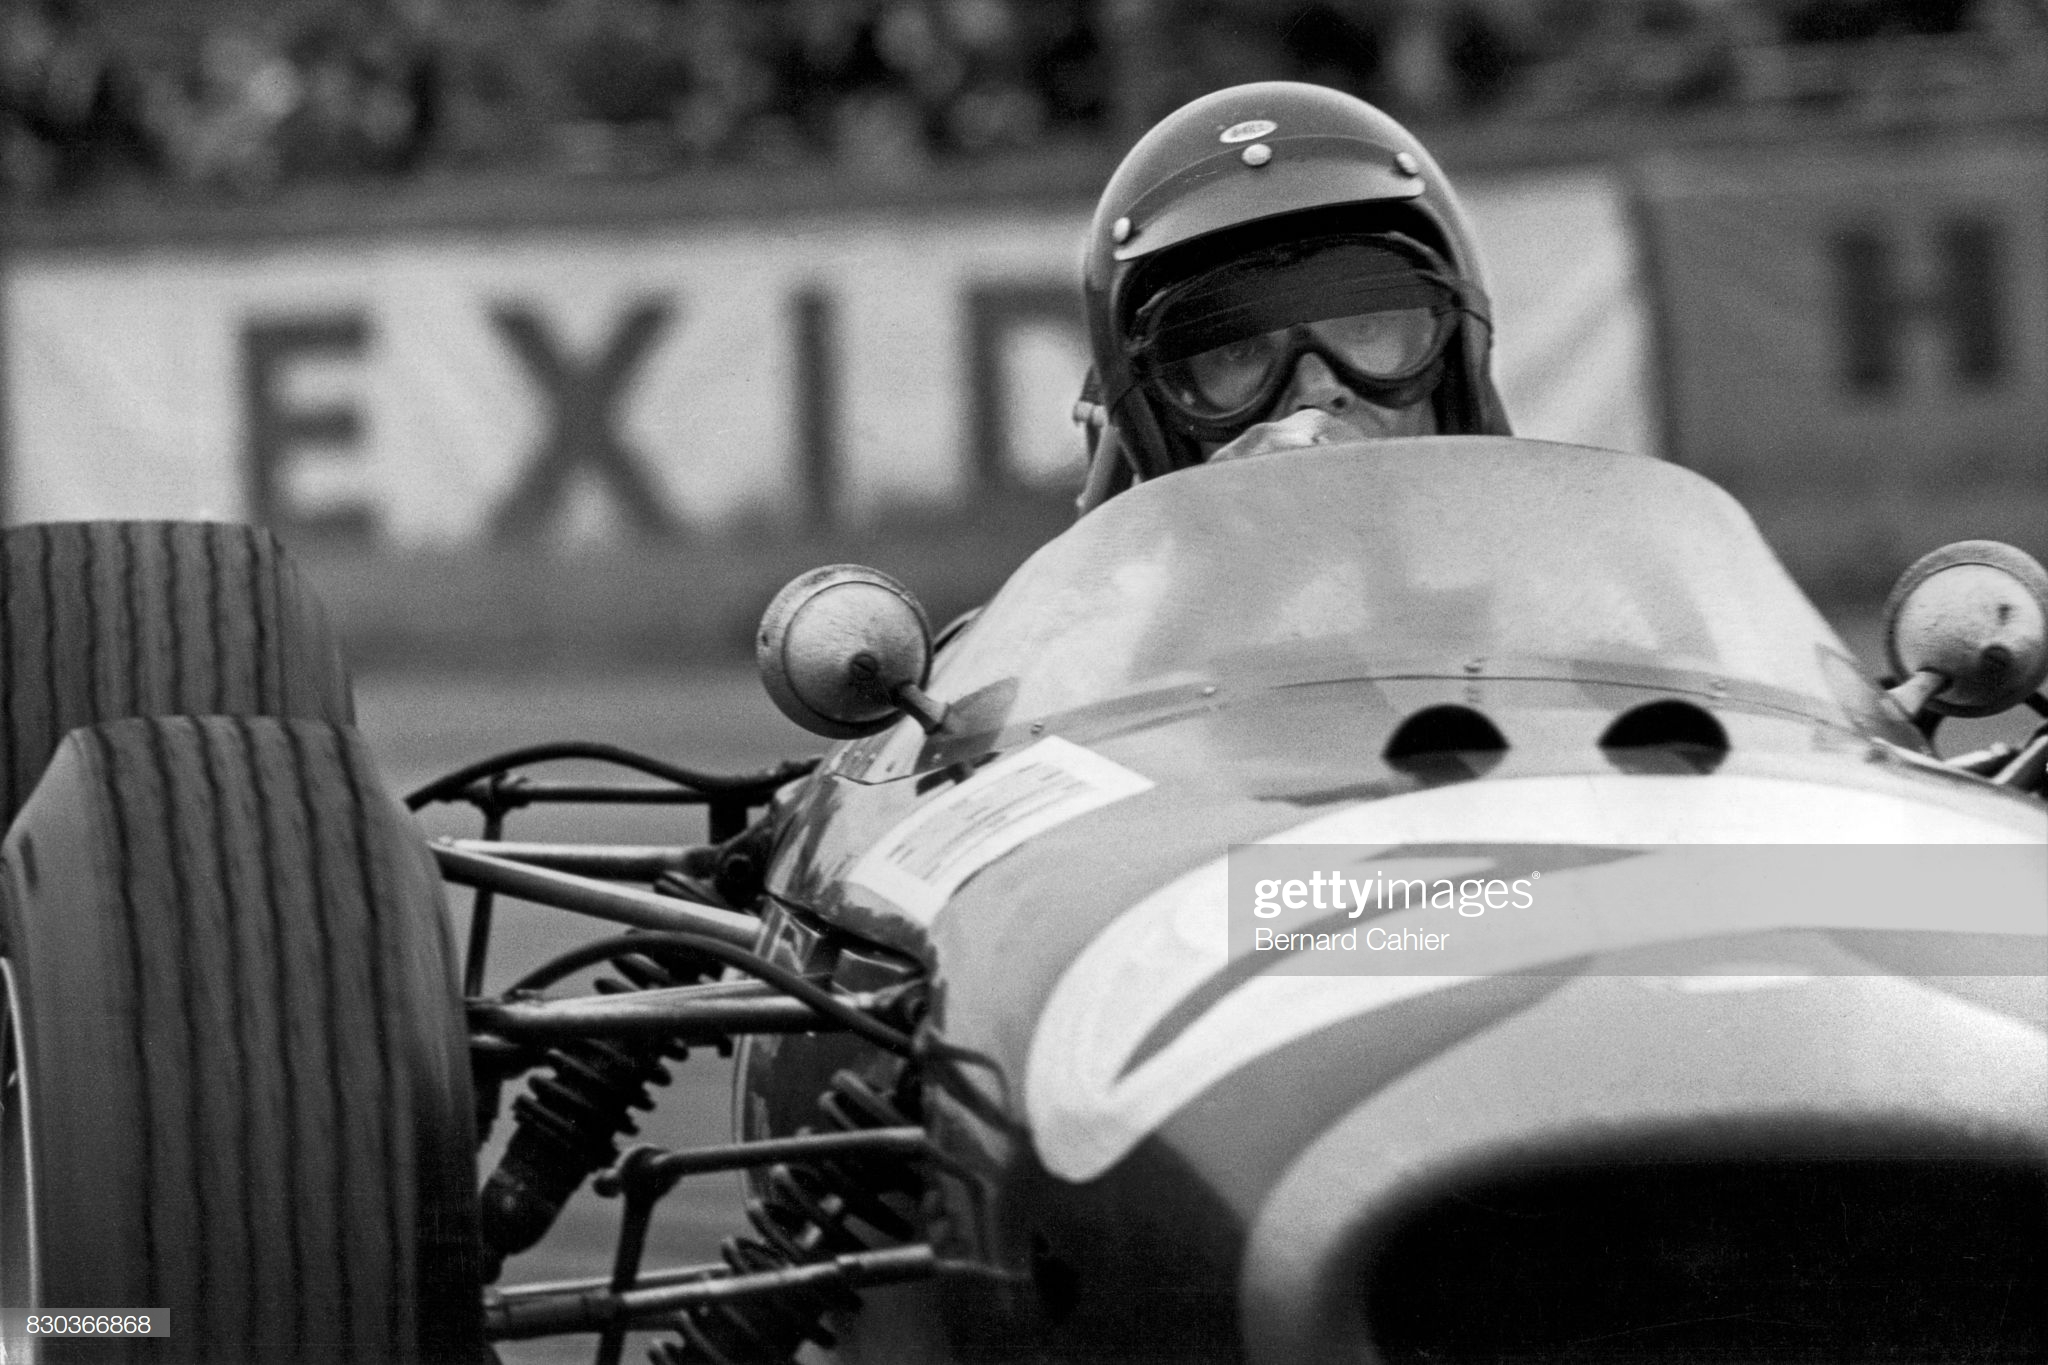 Dan Gurney, Silverstone, 10 July 1965 - Photo by Bernard Cahier/Getty Images